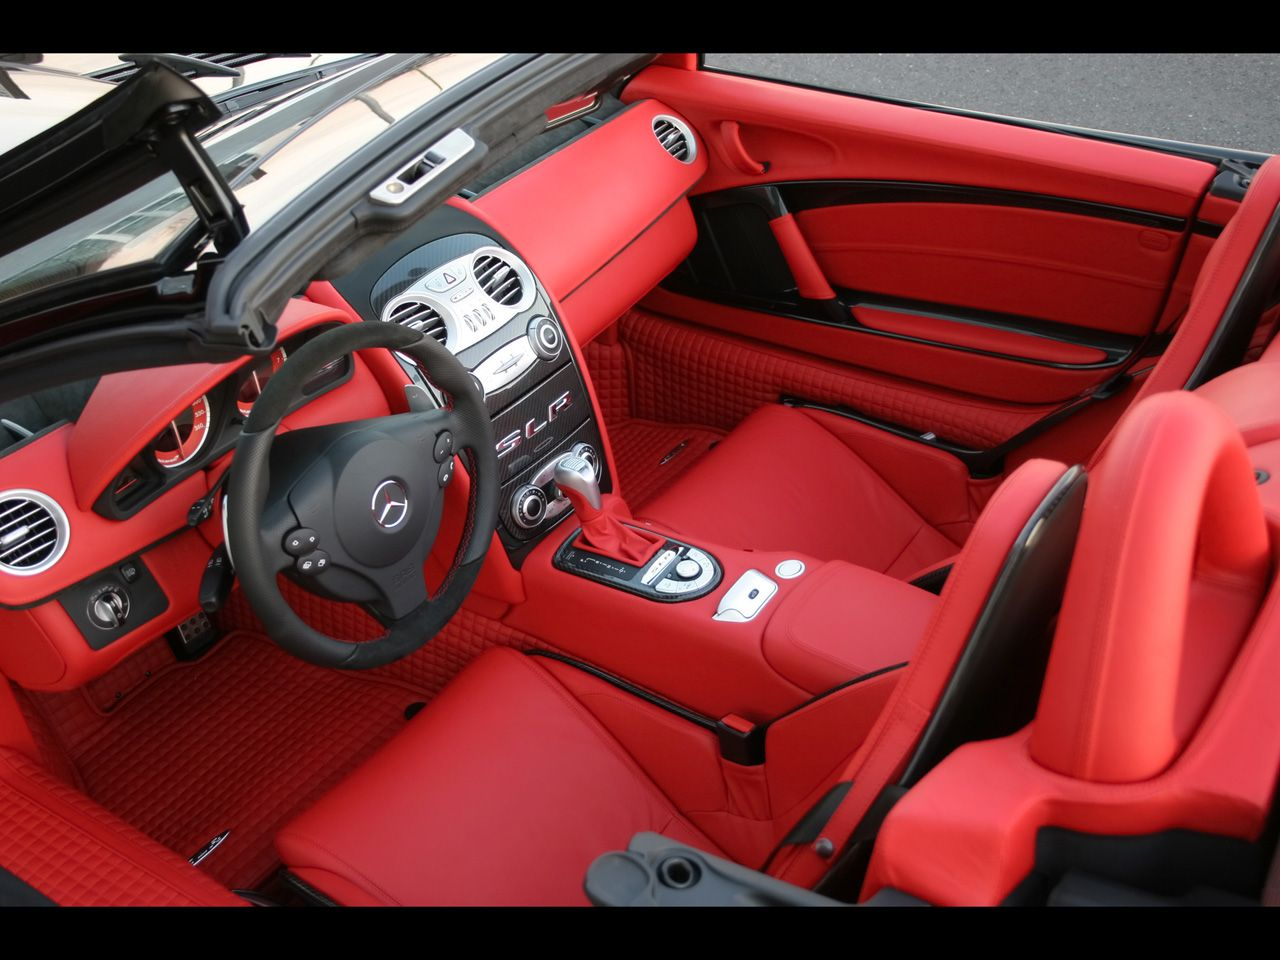 Mercedes Benz slr interior